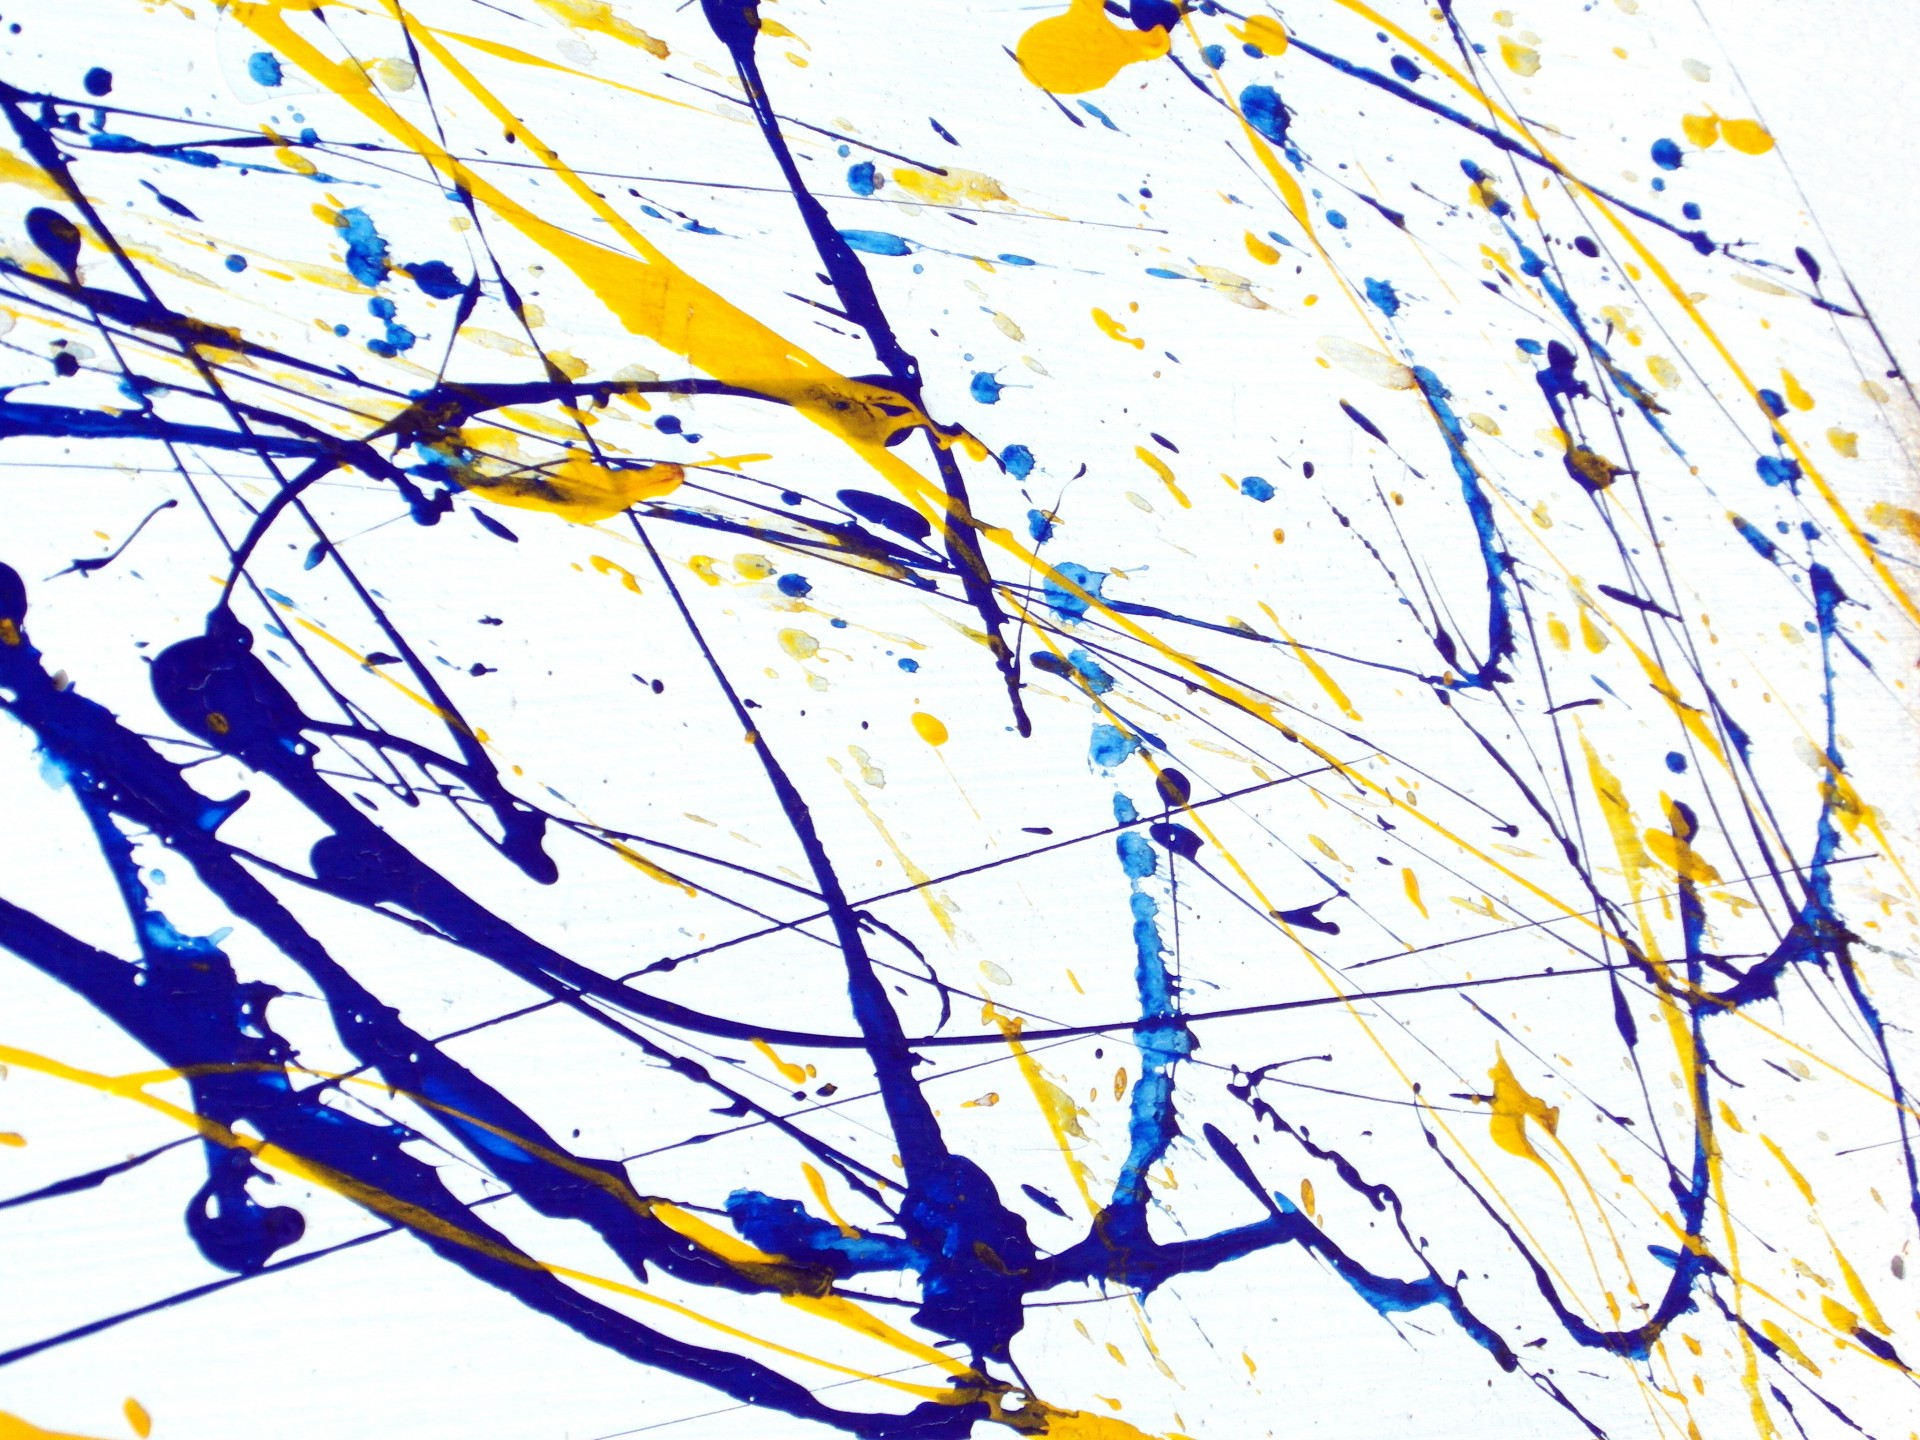 Abstract Paint Splatter Free Stock Photo - Public Domain Pictures